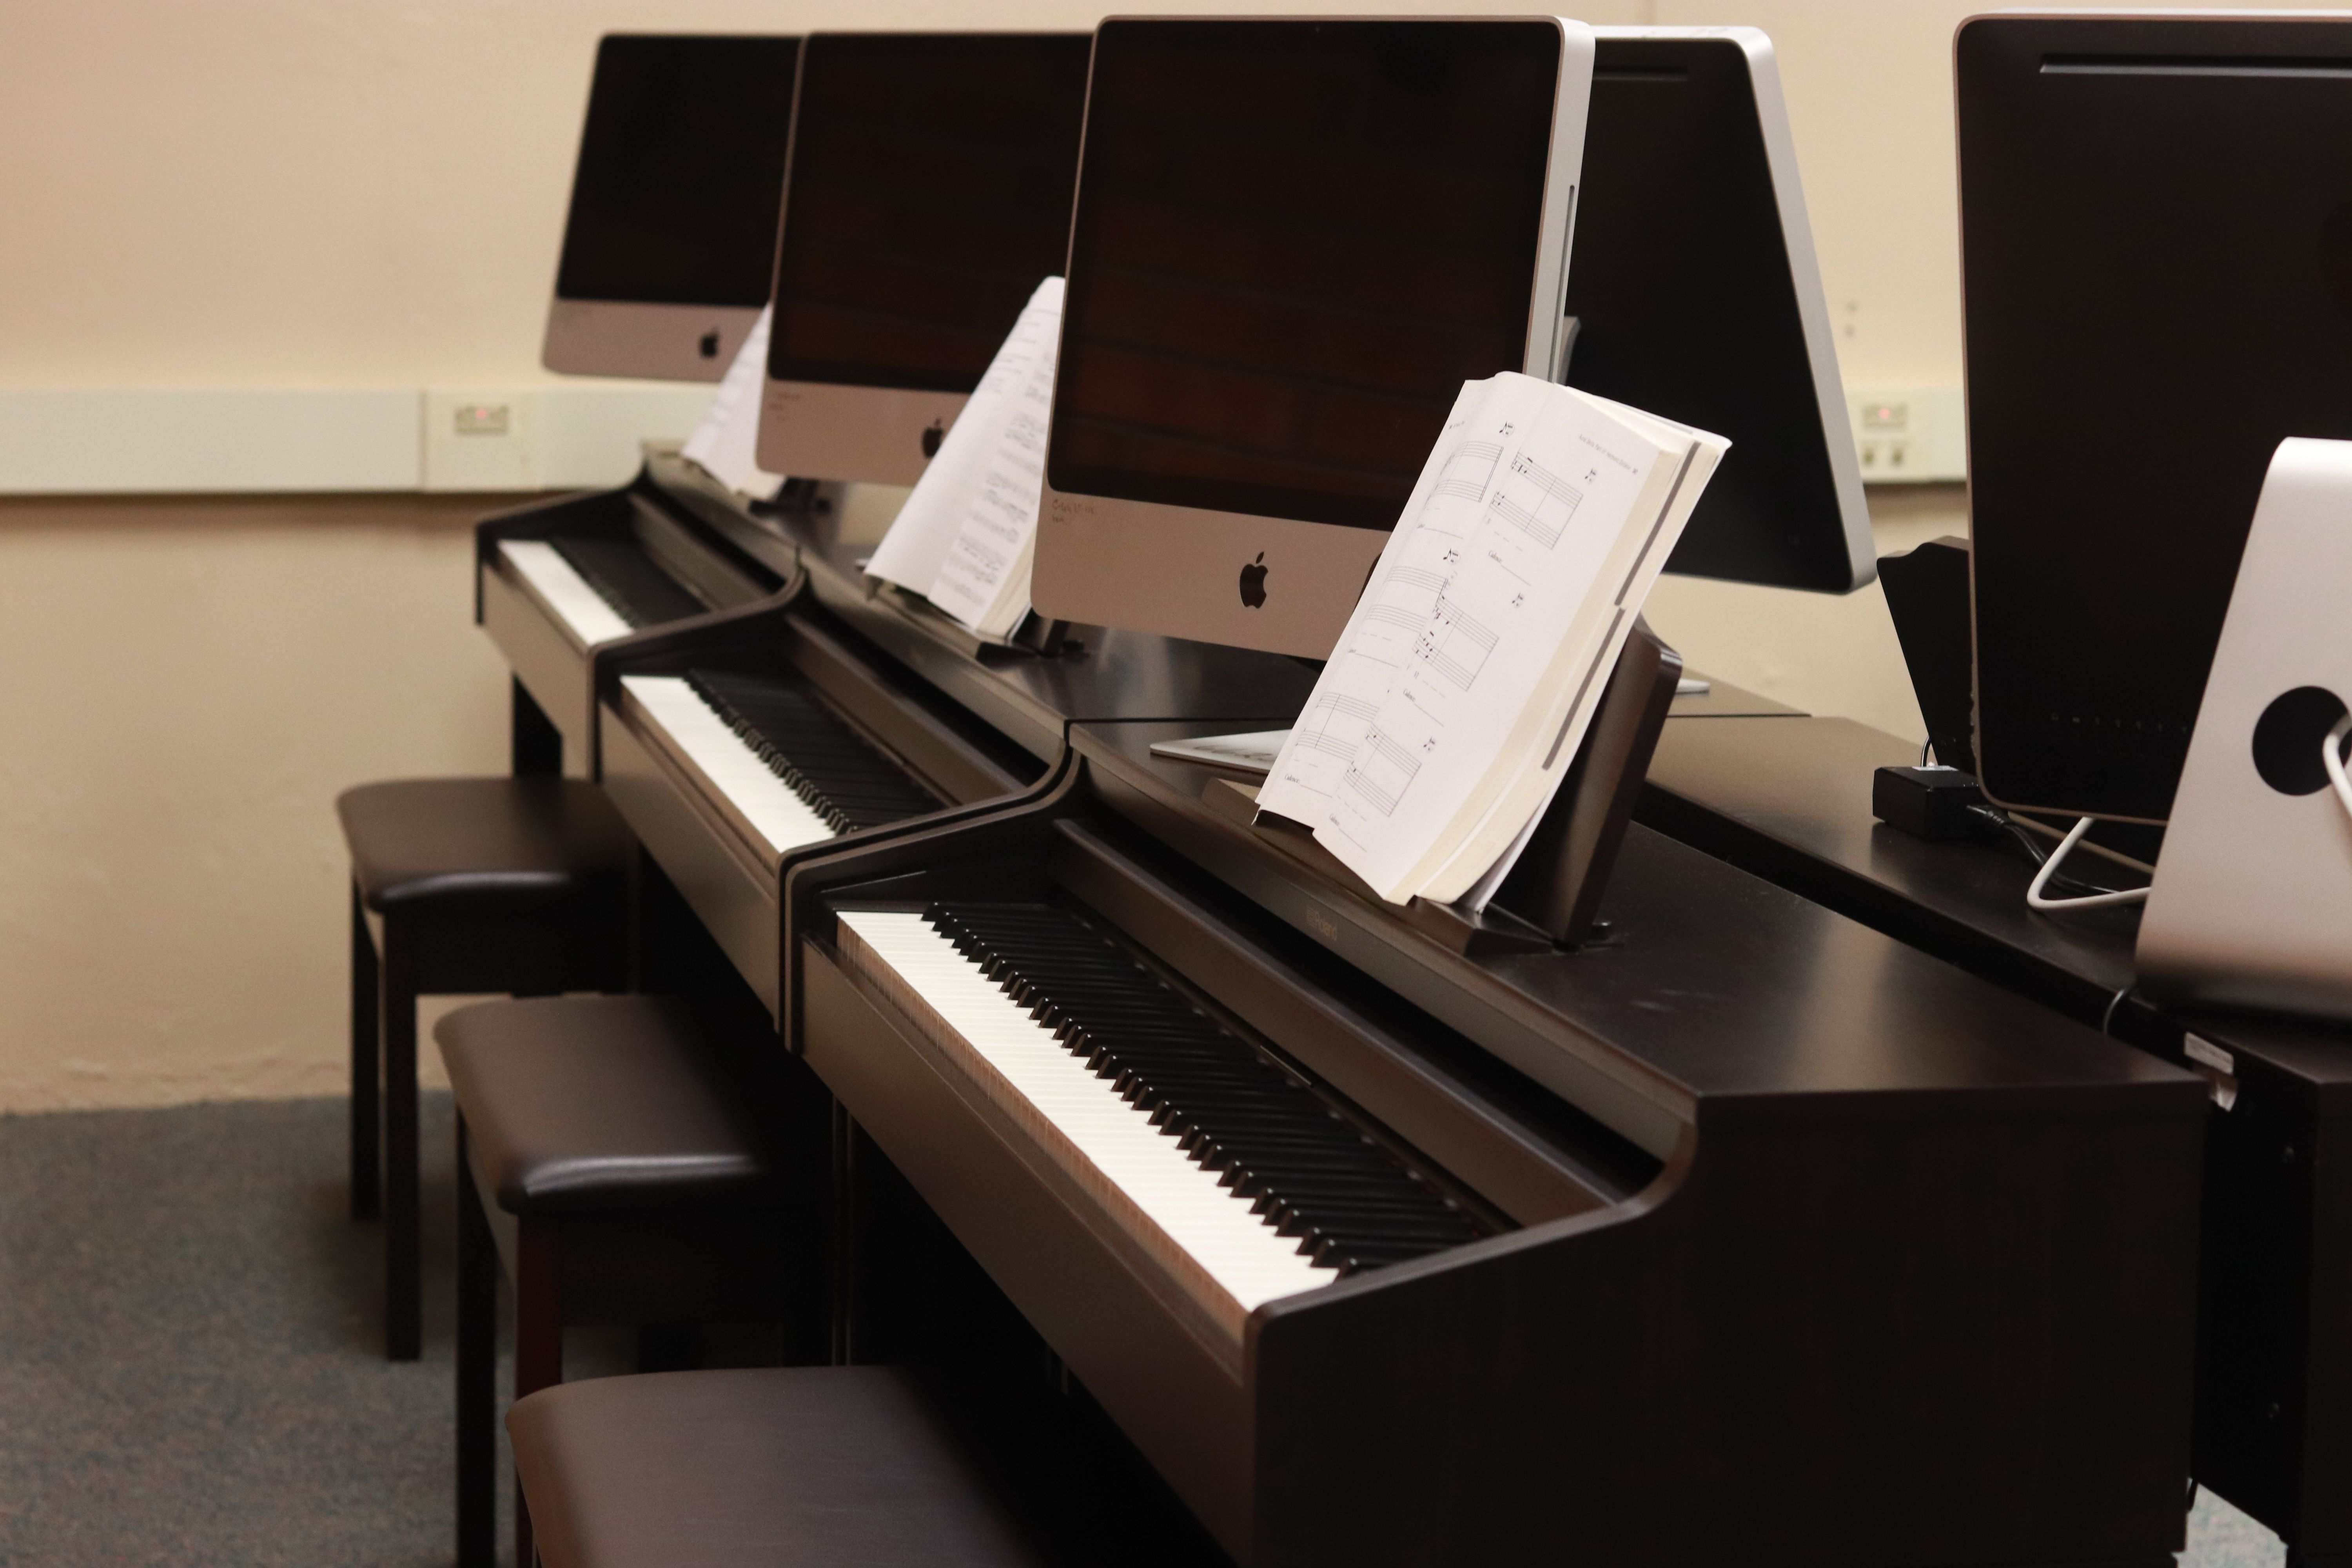 WASDEF Awards $10,381 to Support New Piano Lab at WAHS